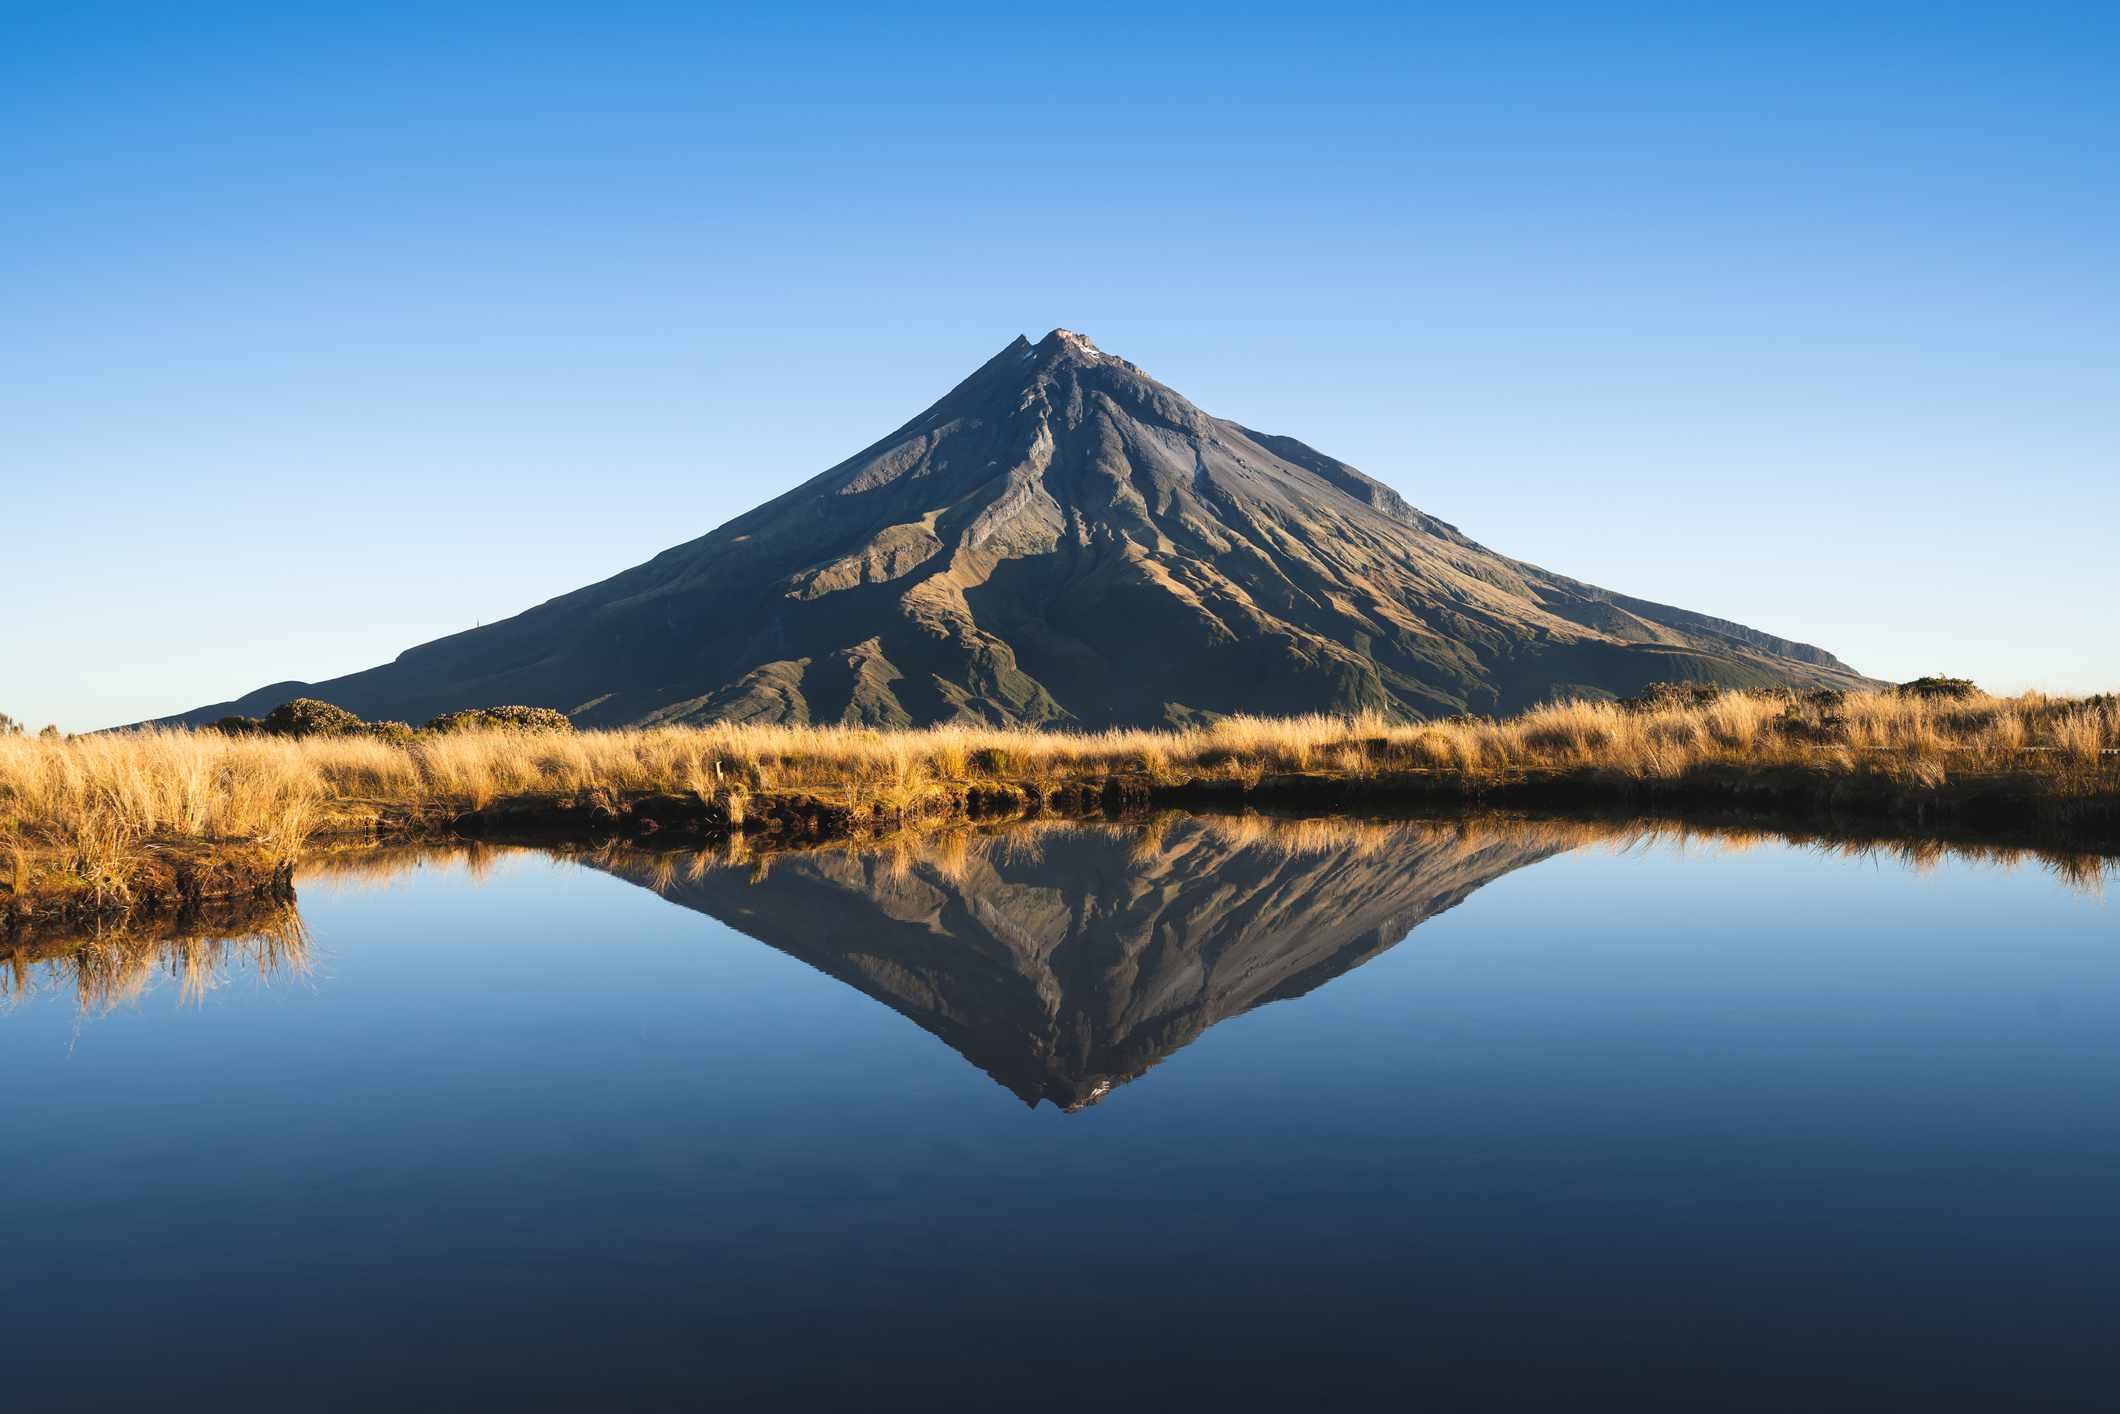 volcano with reflection in a lake and grassland in between